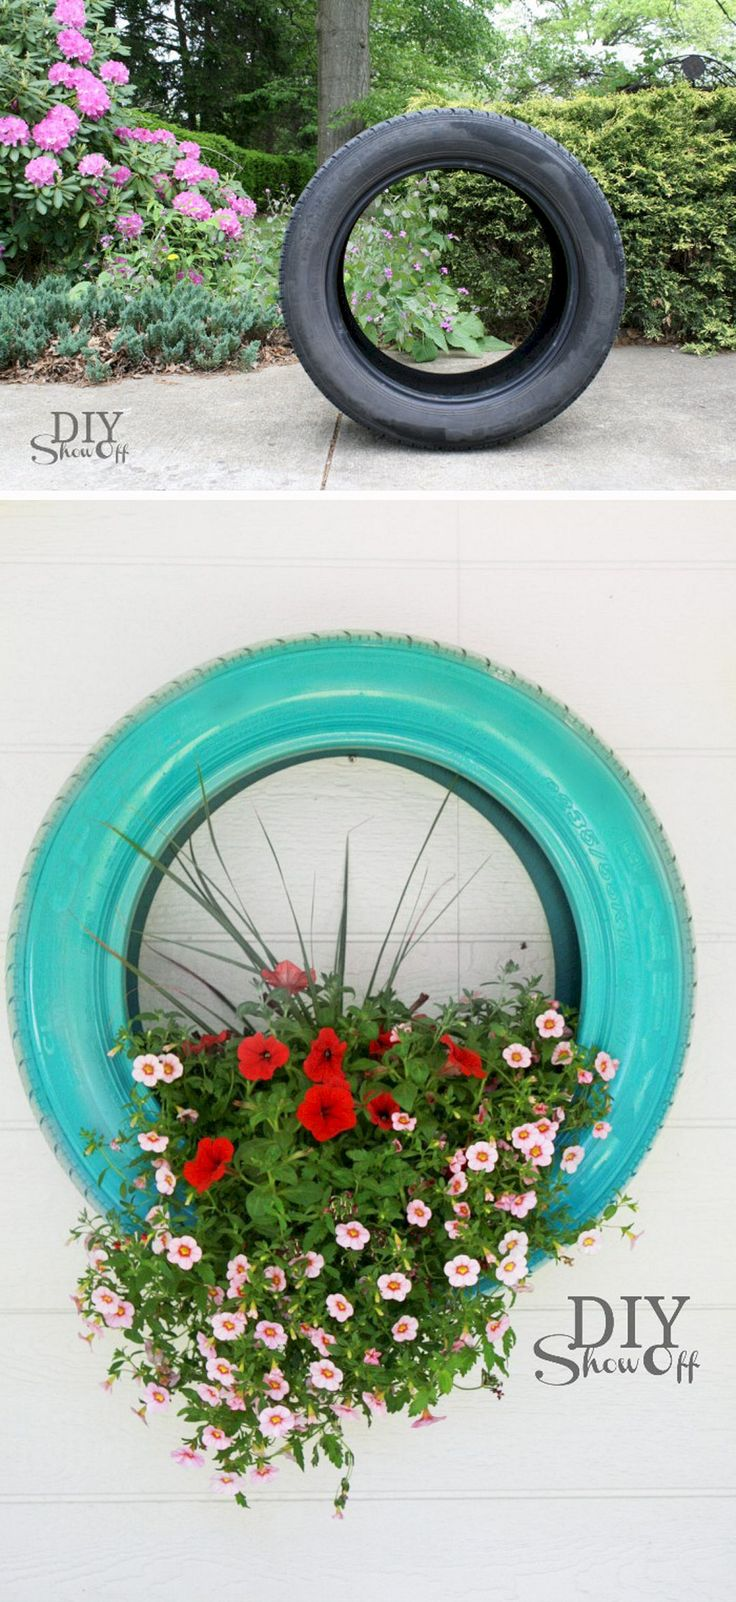 90 diy wonderful tire garden ponds on a budget inspirations - Garden Ideas Using Tyres